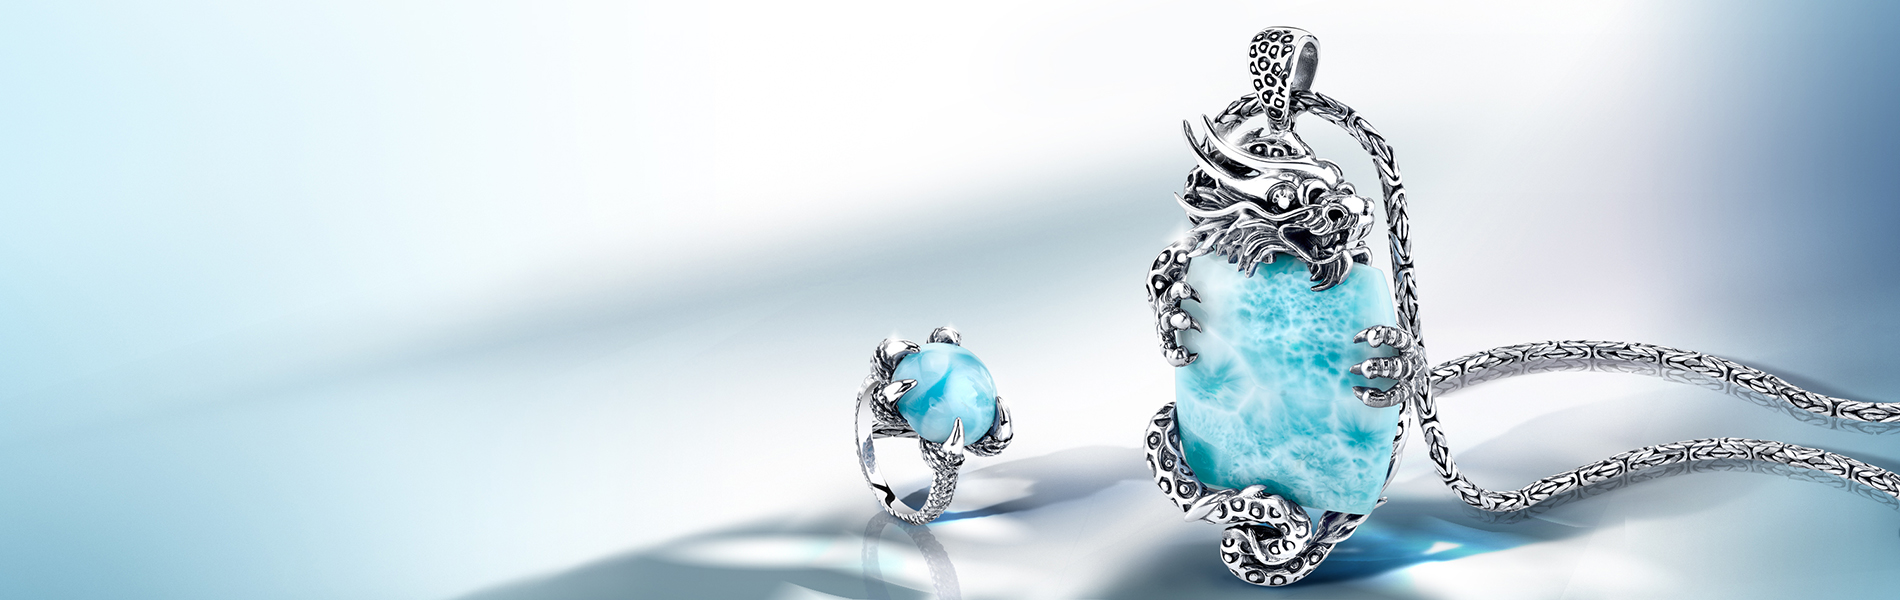 ring ad, pendant ad, jewelry ad, larimar ad, beautiful ad